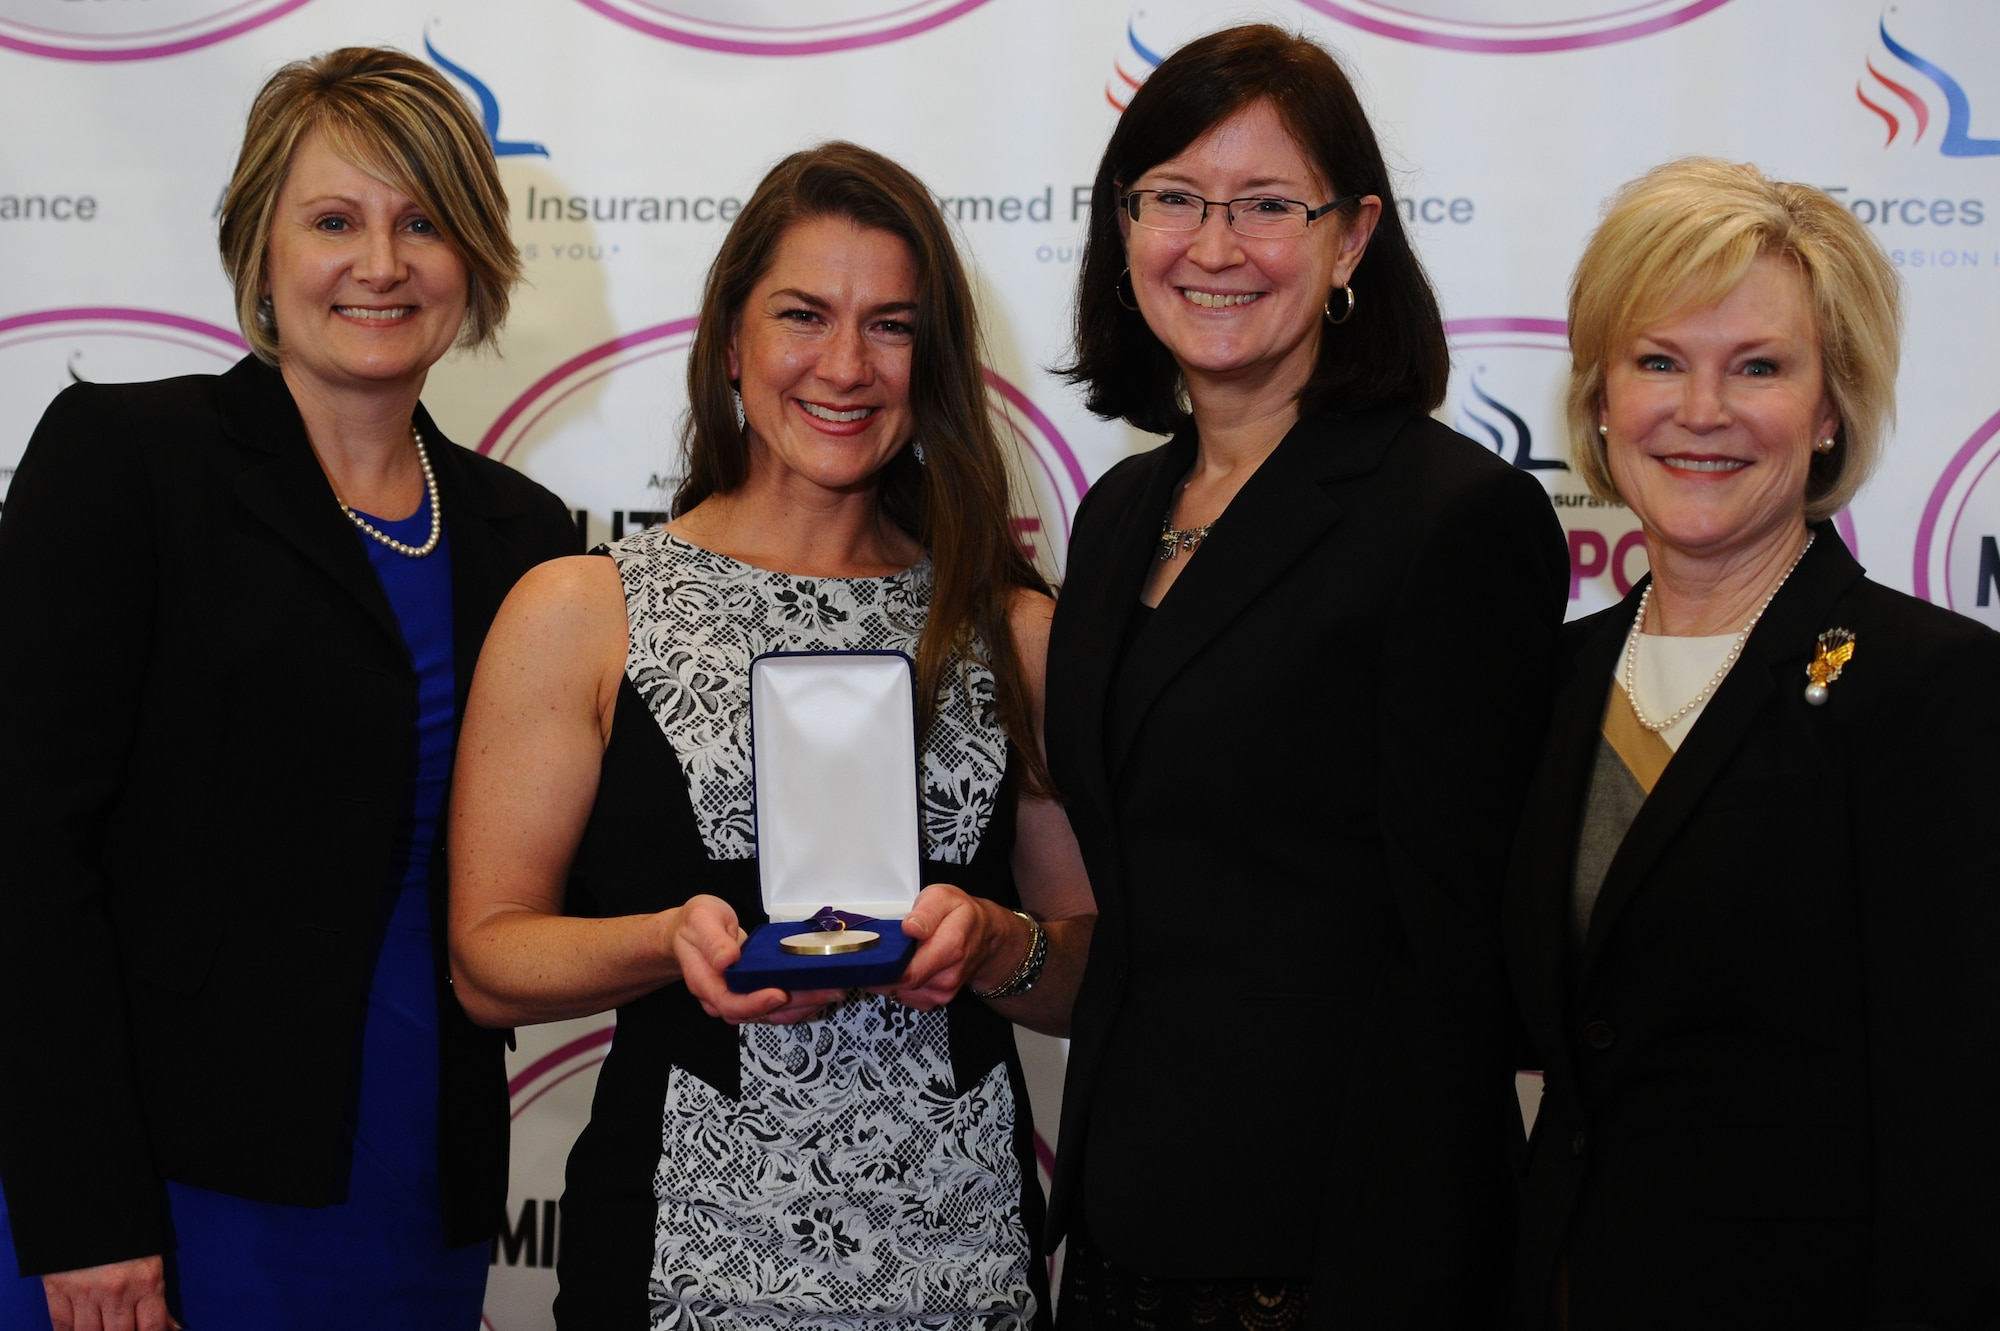 Military spouses Marie Hotaling, Michelle Aikman, Ricki Selva and Dawn Goldfein attended the Military Spouse of the Year award luncheon May 5, 2016, at Fort Myer in Arlington, Va. More than 100 military spouses attended the event. (U.S. Air Force photo/Tech. Sgt. Bryan Franks)